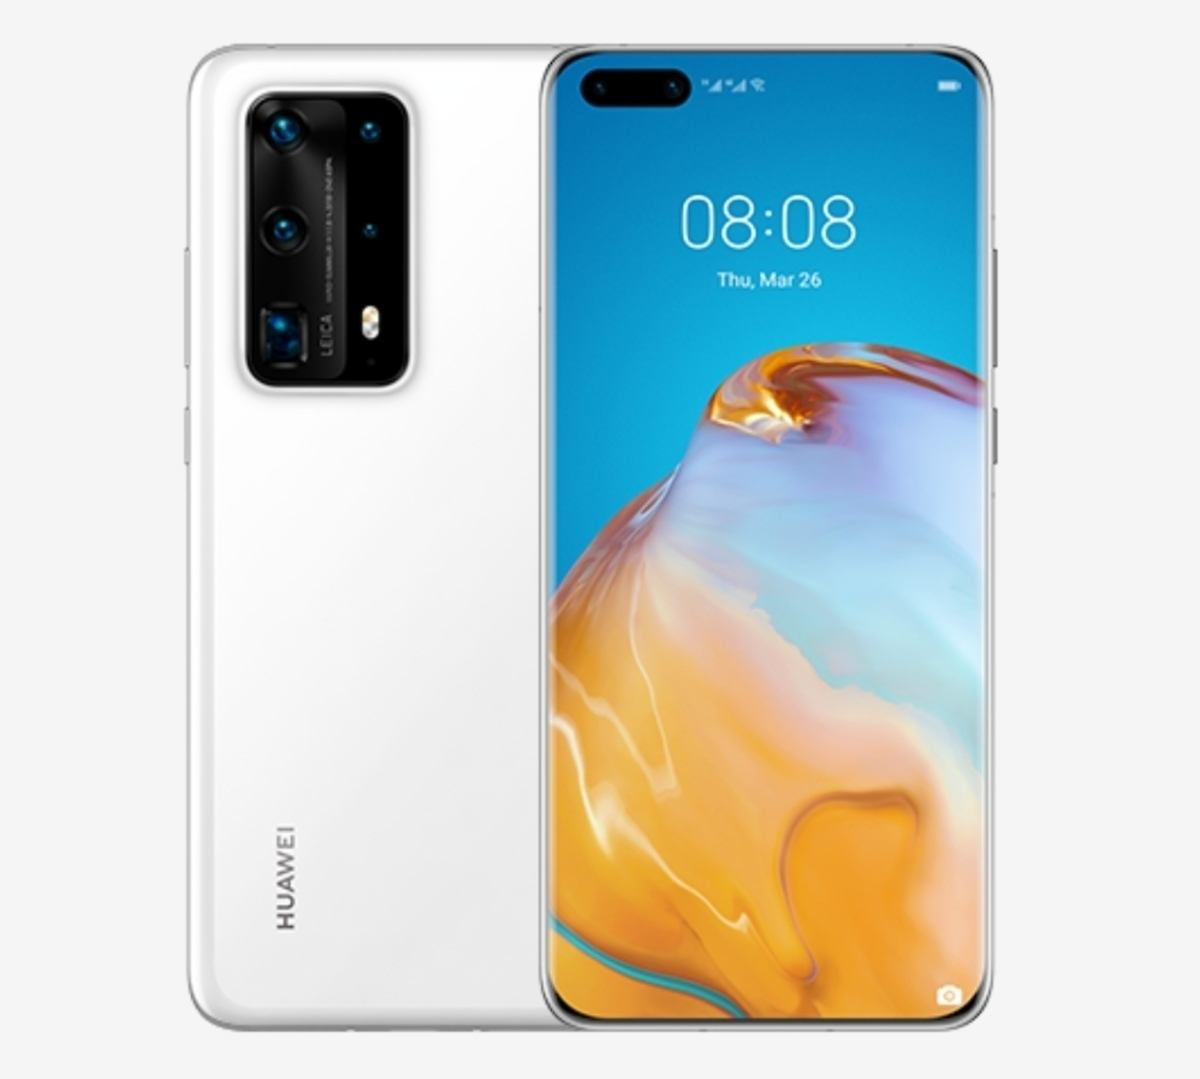 Huawei P40 pro Plus price in Nigeria, Huawei P40 Pro Plus specs and price in Nigeria, Huawei P40 Pro Plus, huawei p40 pro plus specs, huawei p40 pro plus price, huawei p40 pro plus in Nigeria, price of Huawei p40 pro plus in Nigeria, how much is huawei p40 pro plus, where to buy huawei p40 pro plus